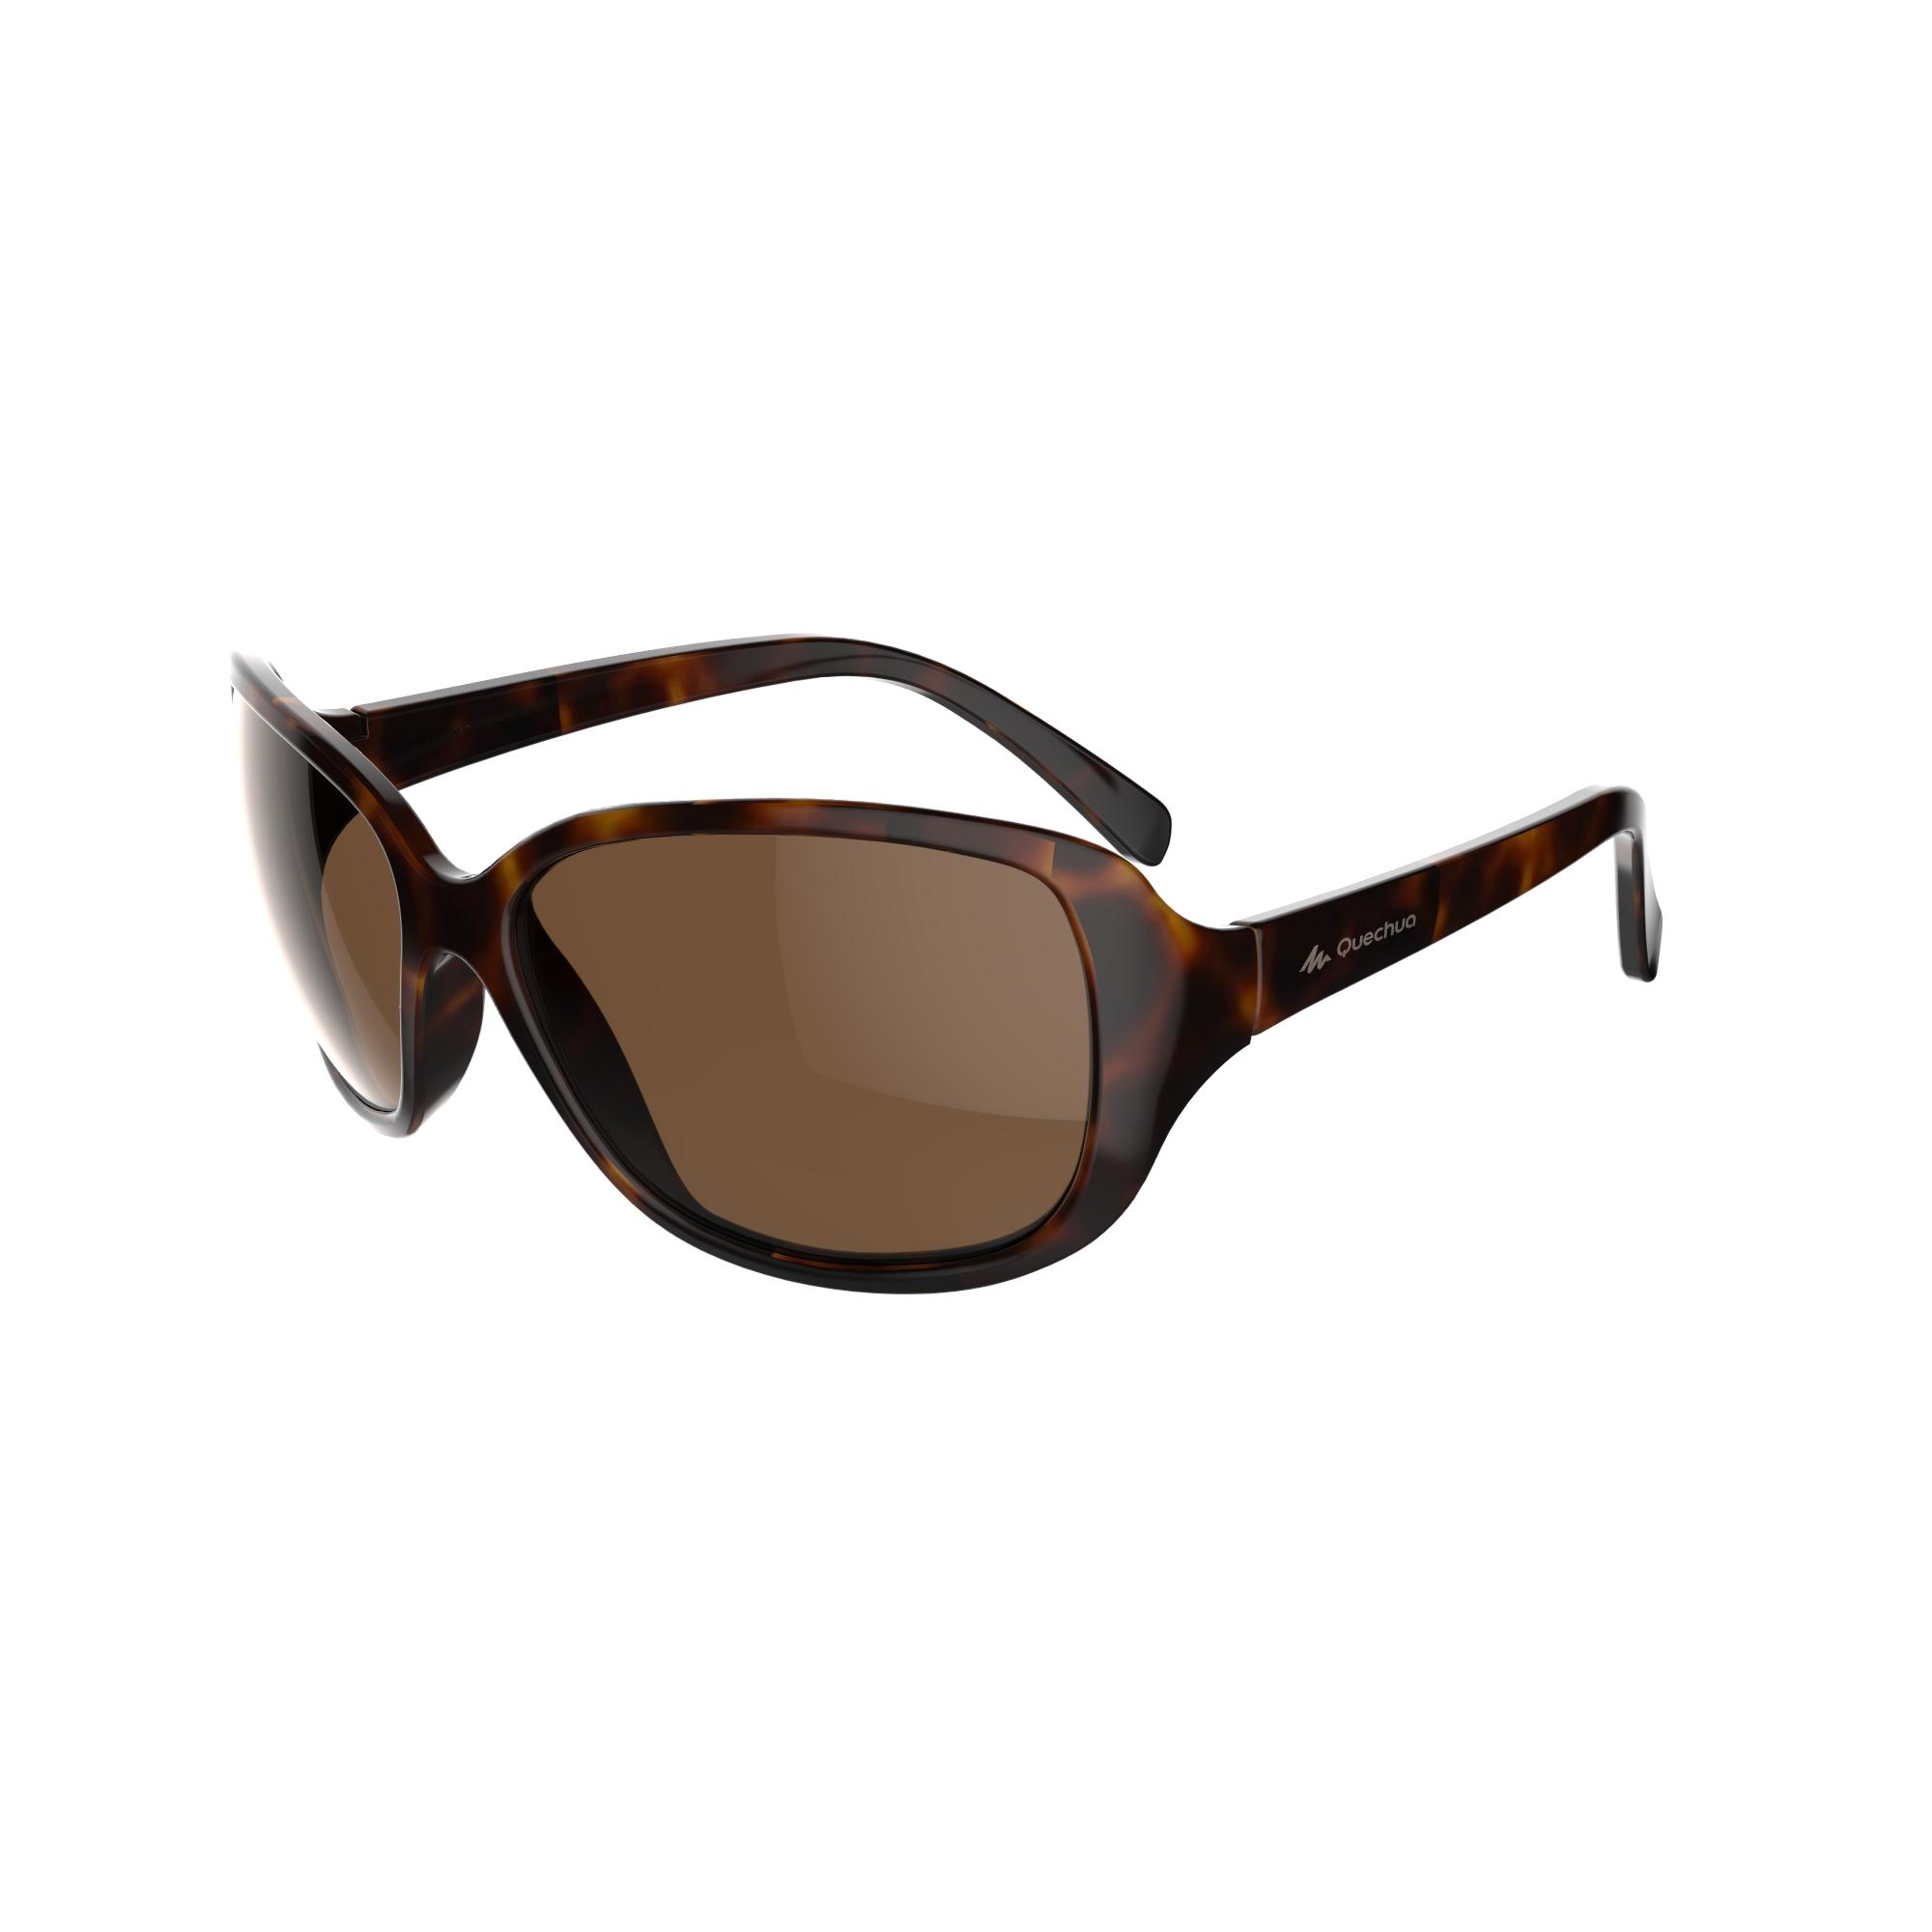 Category 3 women's MH 120 W hiking sunglasses - Brown